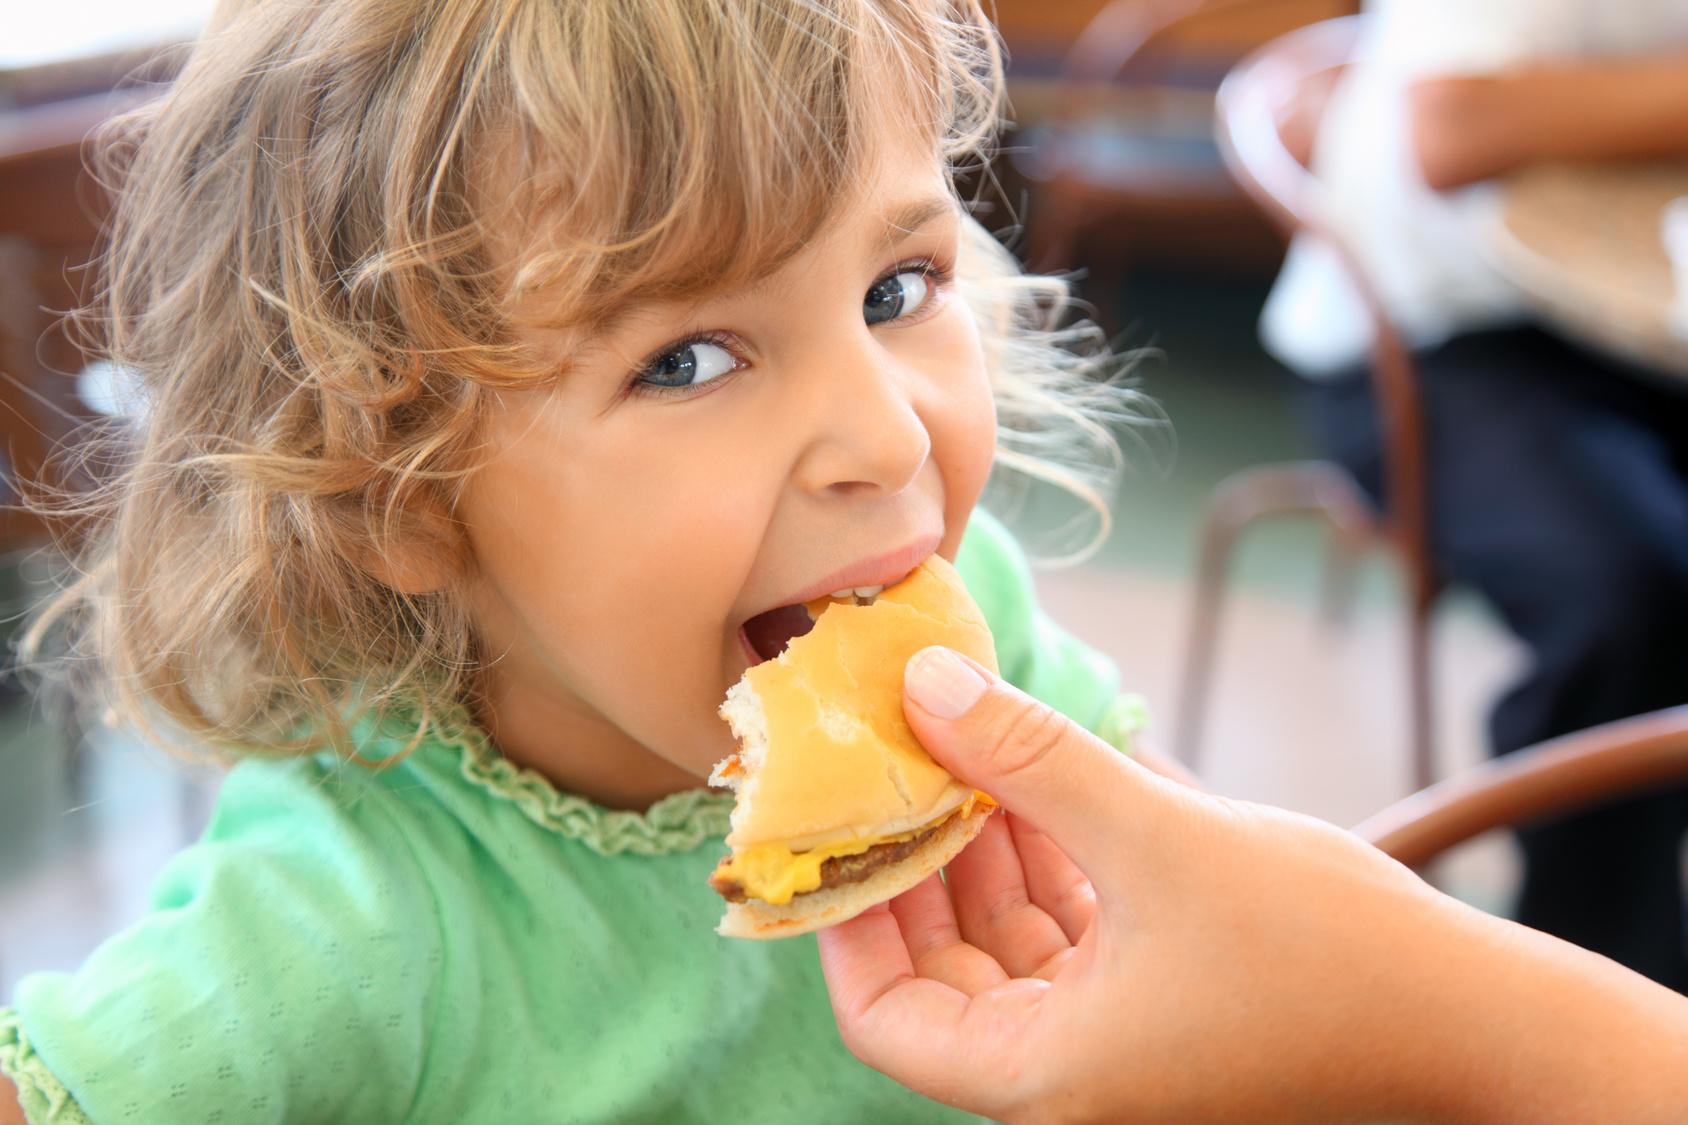 Could Childhood Obesity Be Considered Child Abuse?